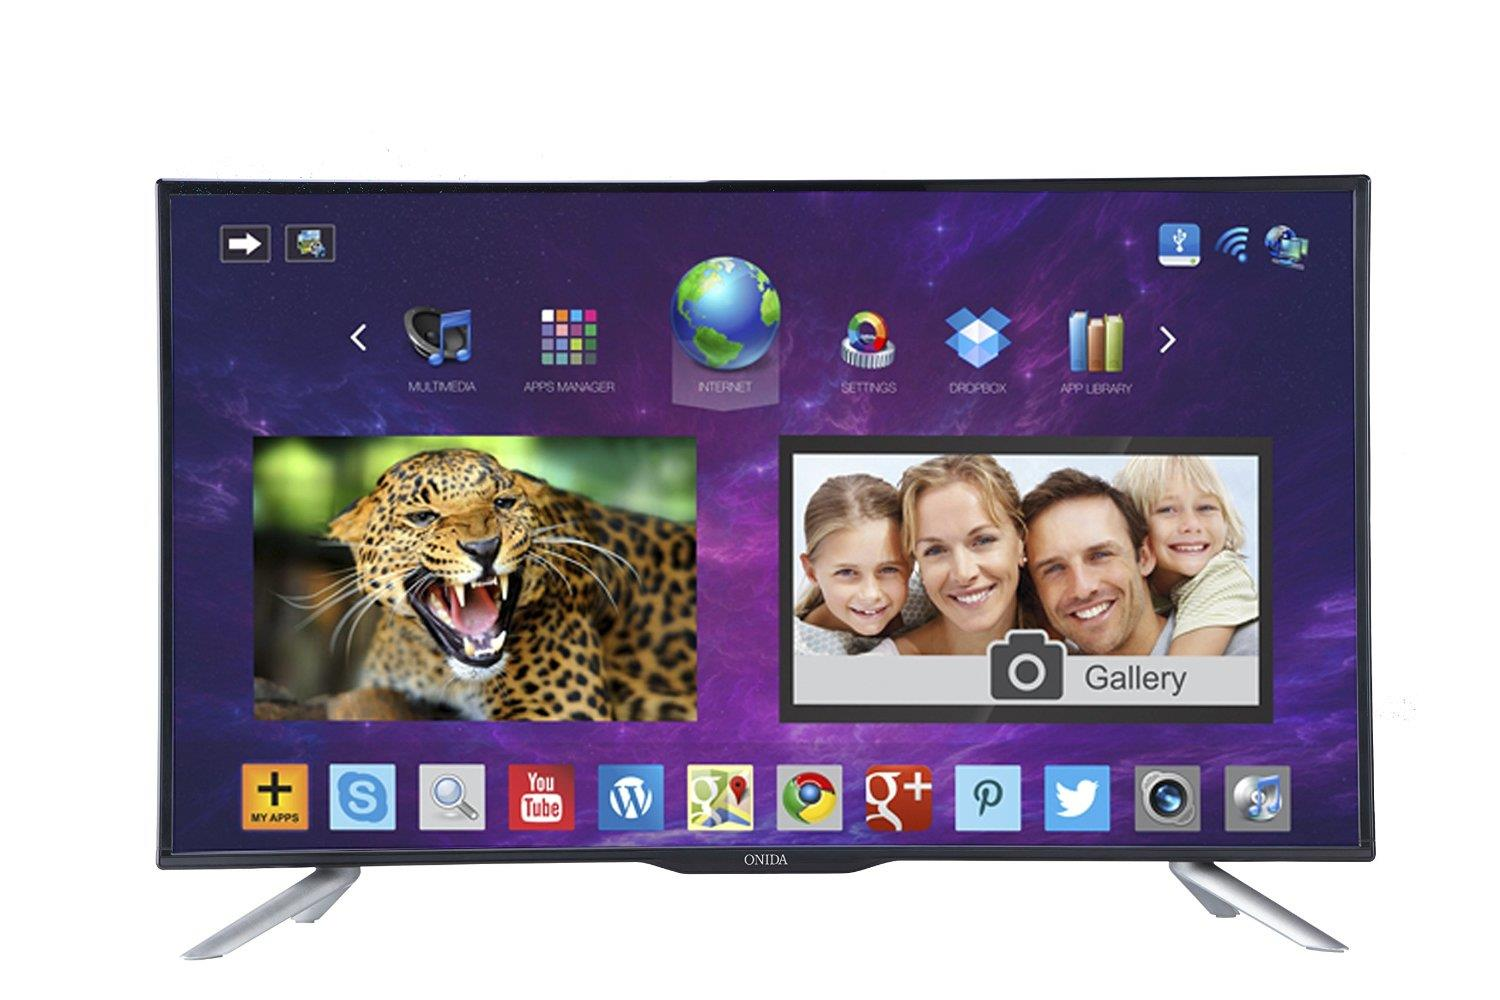 Onida 40 iTube Smart LED TV Image